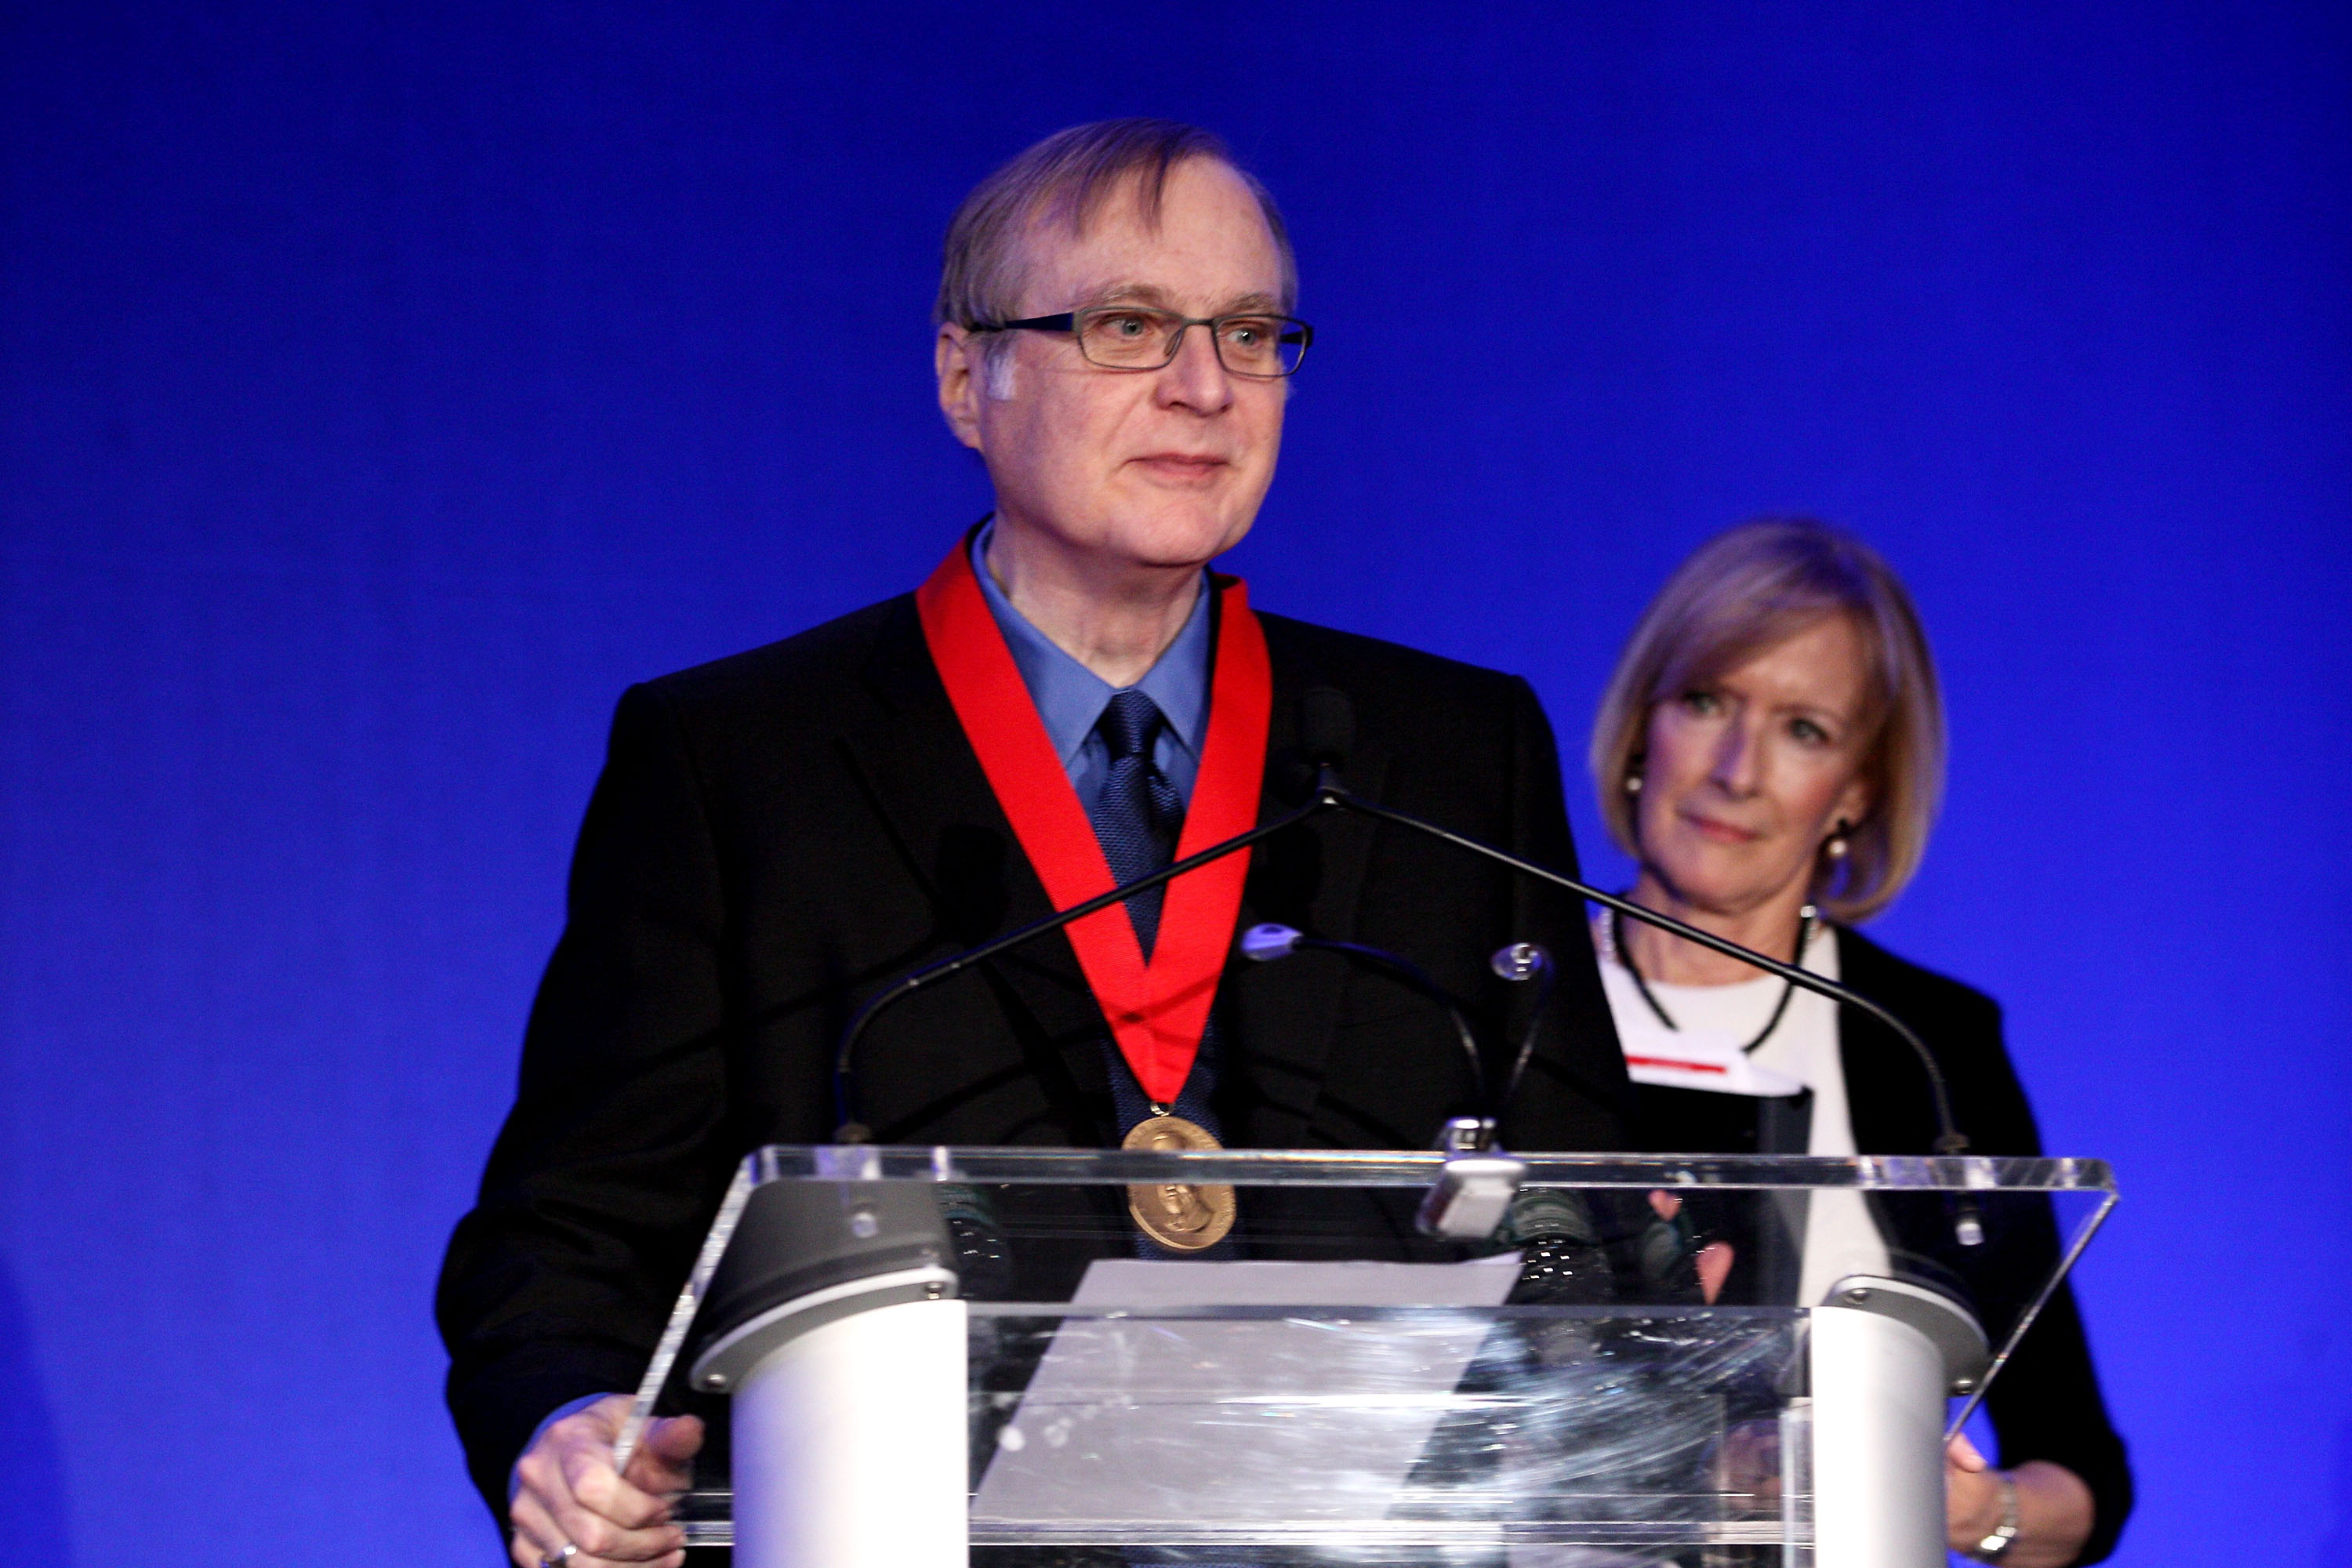 2015 Carnegie Medal Of Philanthropy Award Ceremony